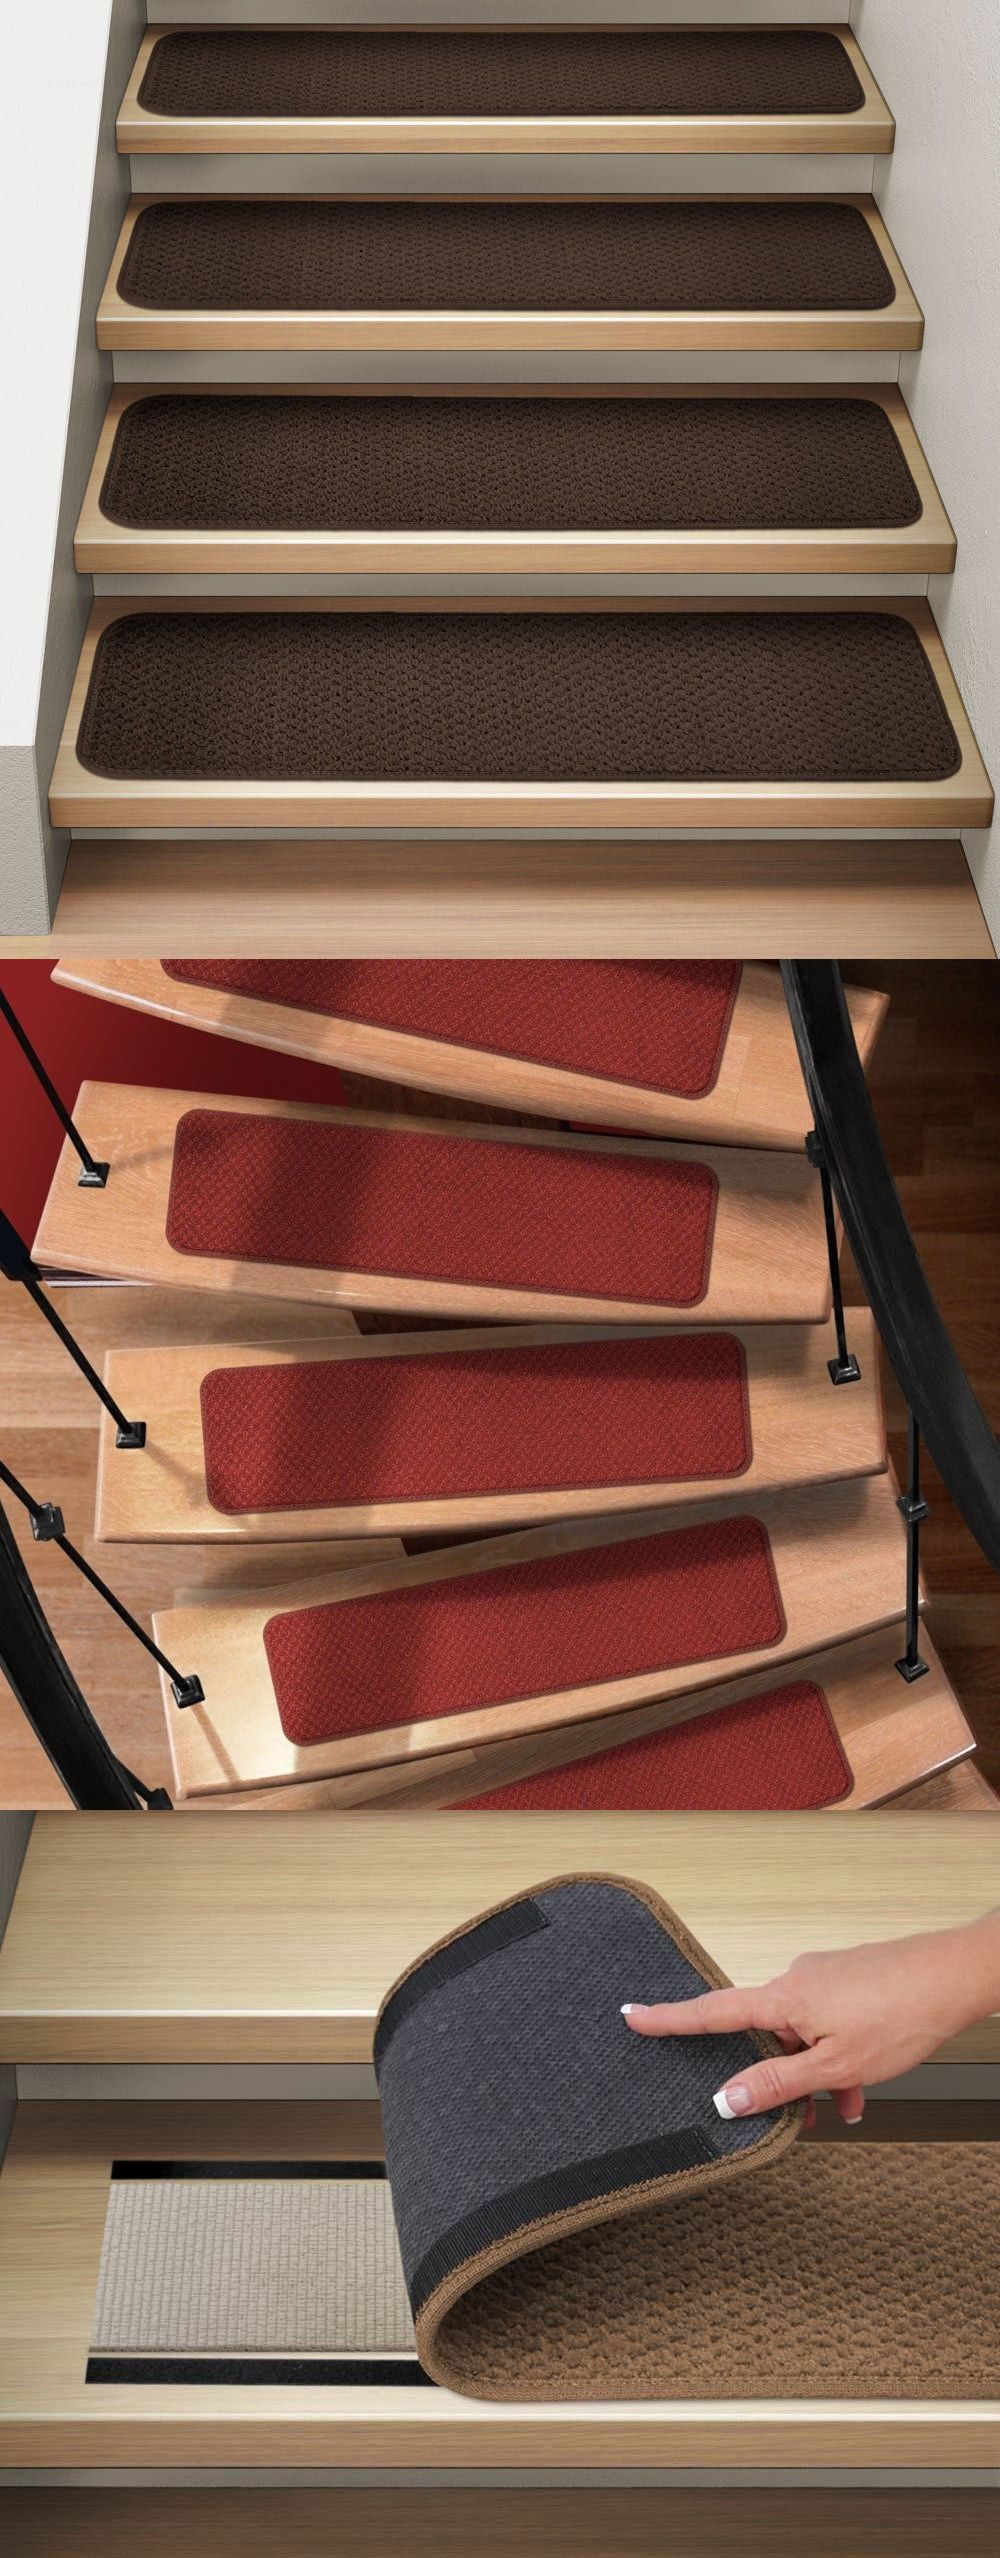 Best Stair Treads 175517 Set Of 15 Attachable Carpet Stair 640 x 480